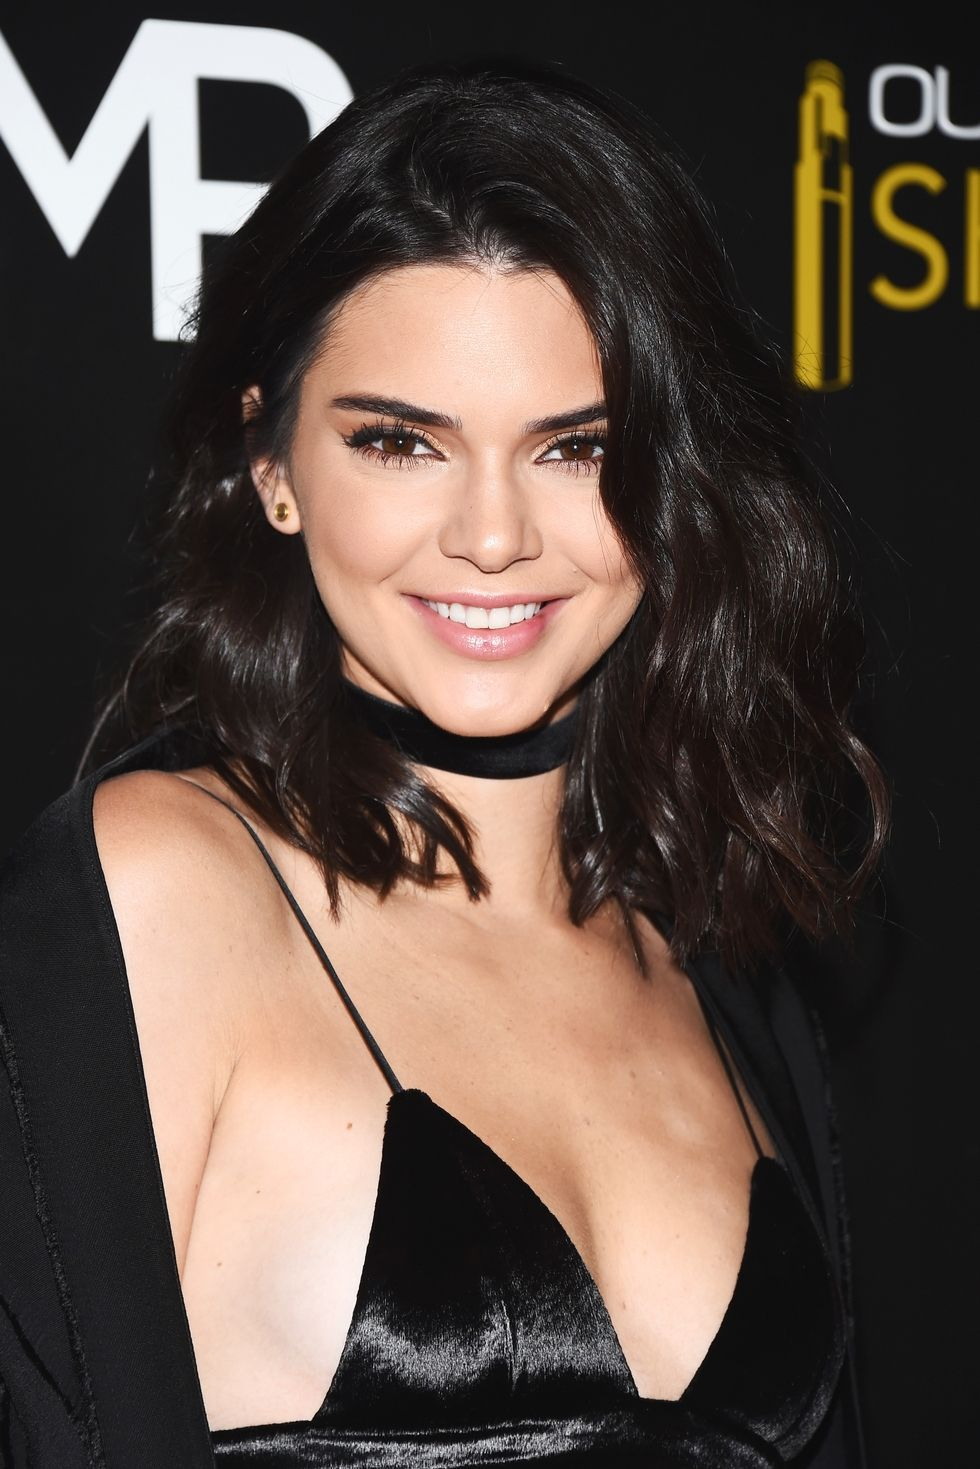 Hollywood Celebrity Actor Actress KENDALL JENNER Poster C Multiple Sizes